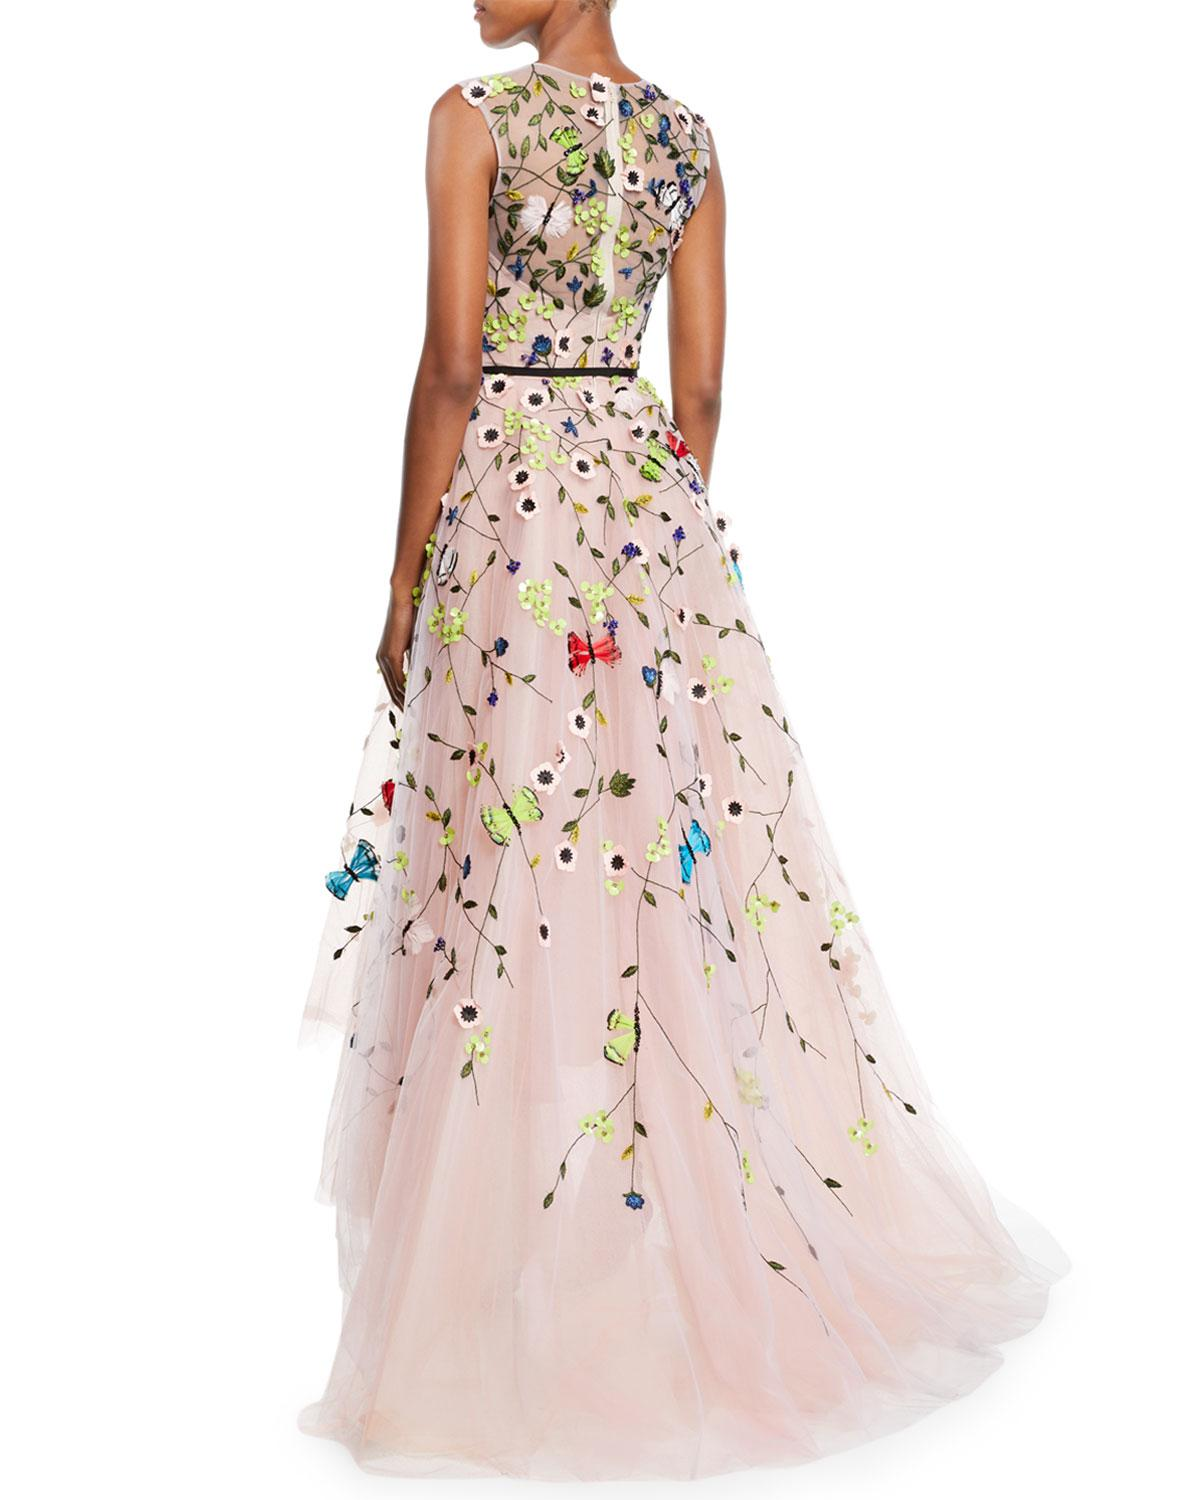 6f20fe3423 Lyst - Monique Lhuillier Jewel-neck Sleeveless Floral-embroidered Tulle  A-line Evening Gown in Pink